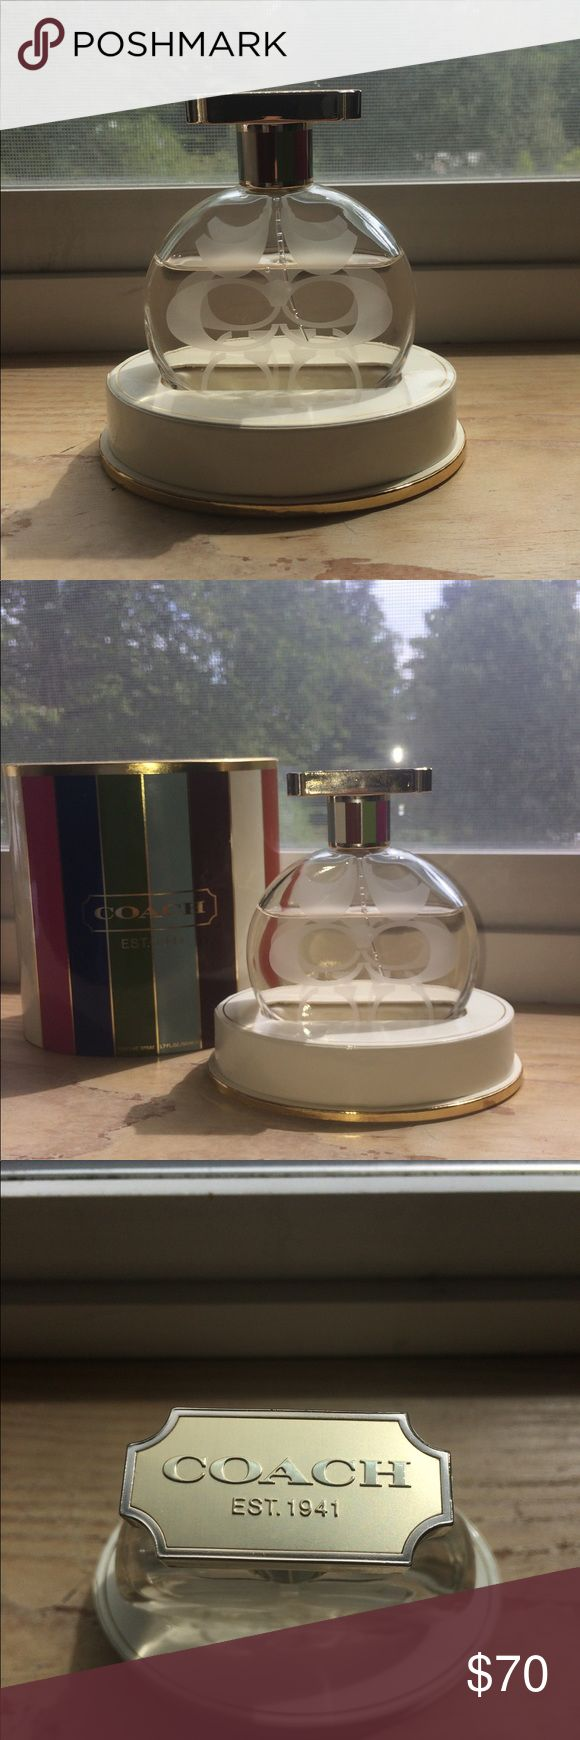 Coach Legacy Perfume Spray 1.7 Fl Oz Lightly used Coach perfume in the scent Legacy. It is full sized, 1.7 fl oz. This perfume is not sold anymore in stores! Open to reasonable offers. Send one over so I can make a price drop for you Sephora Makeup